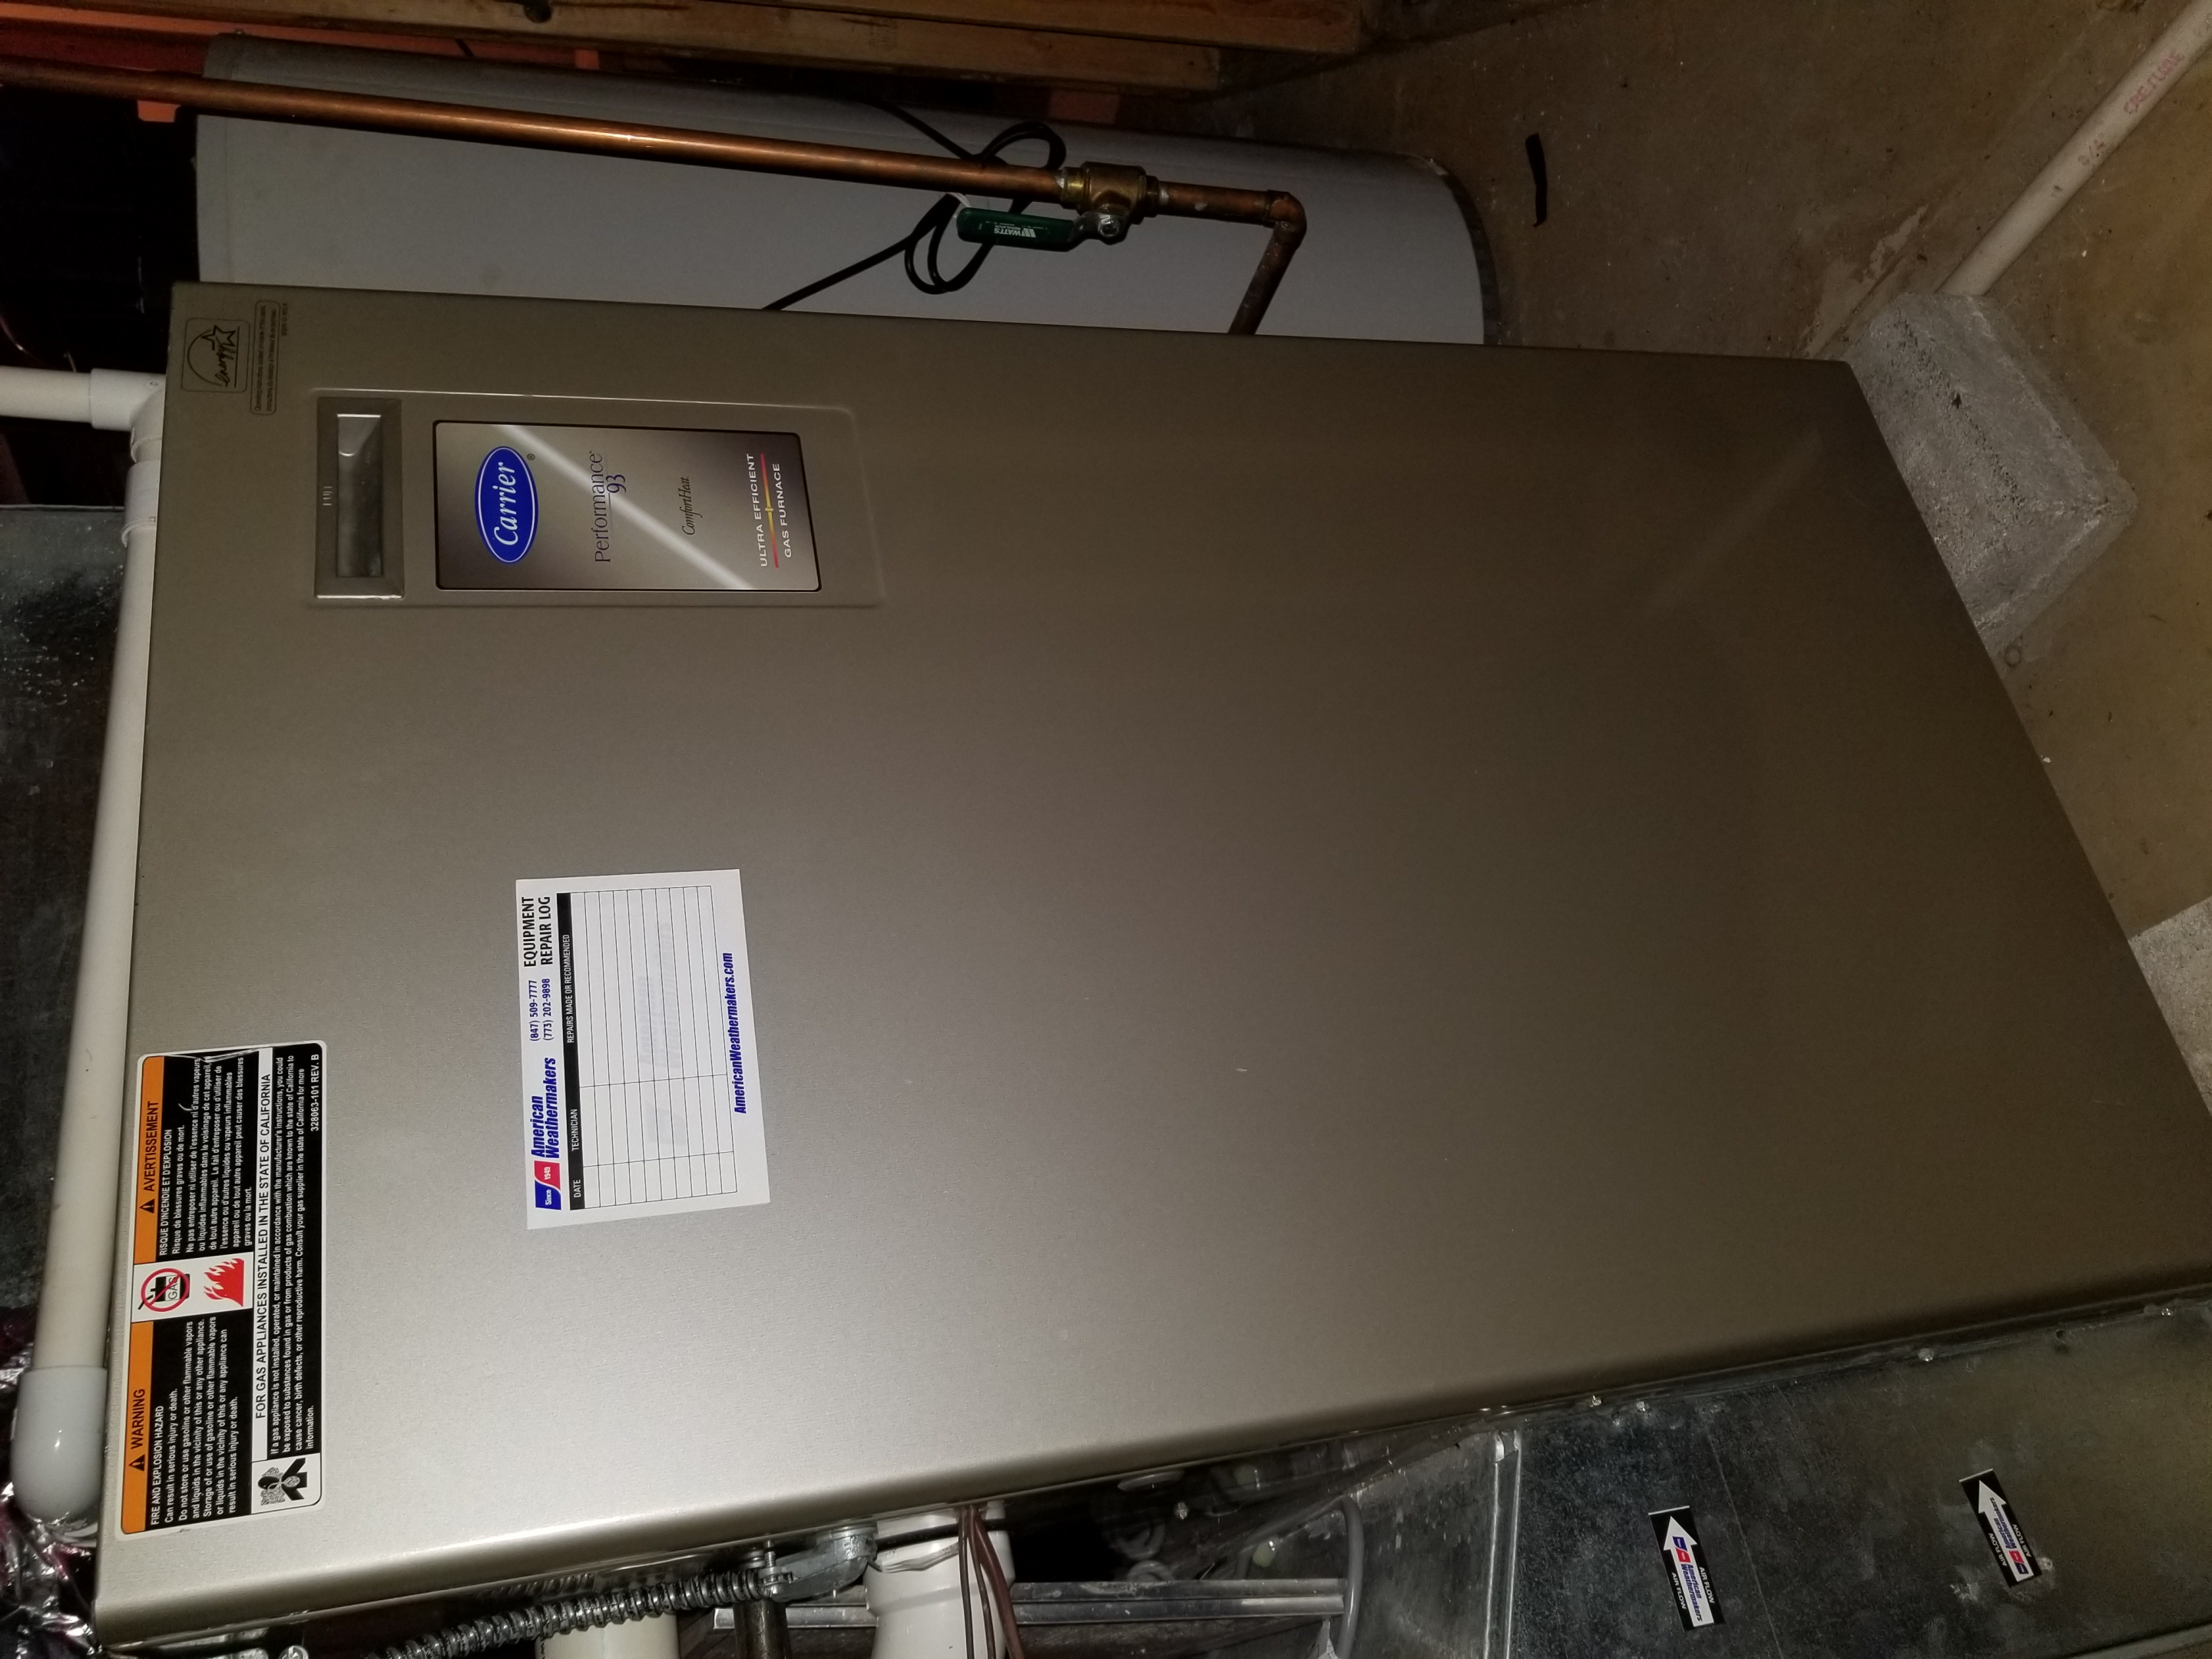 Performed annual maintenance on the Carrier furnace and Aprilaire humidifier and made adjustments to improve the overall efficiency and life expectancy of the equipment